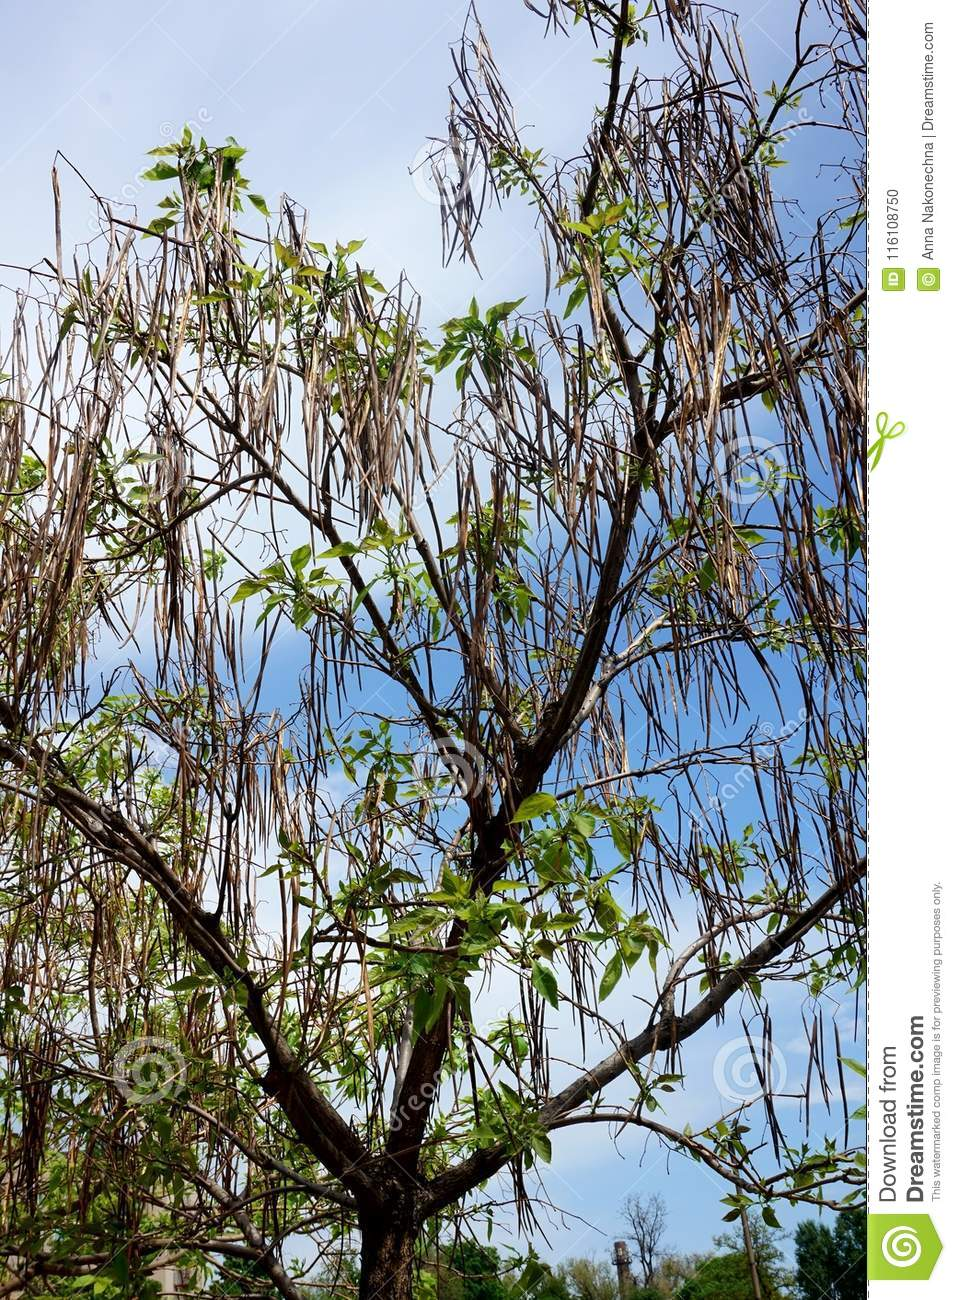 Foliage and tree crown `catalpa` against the blue sky.